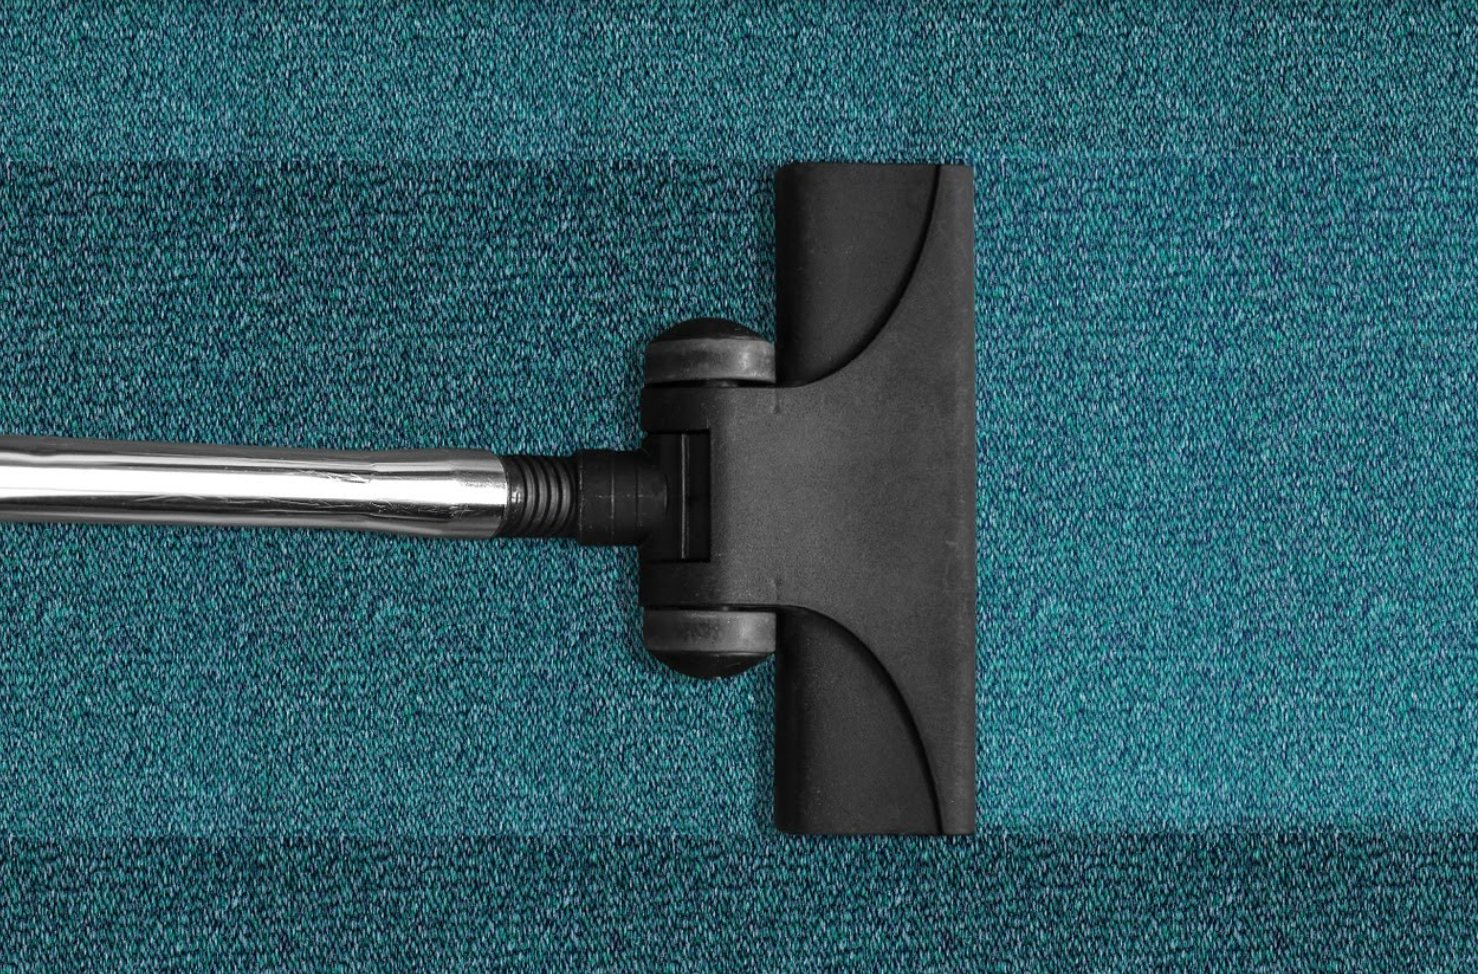 Professional Carpet Cleaning Service Company Ann Arbor